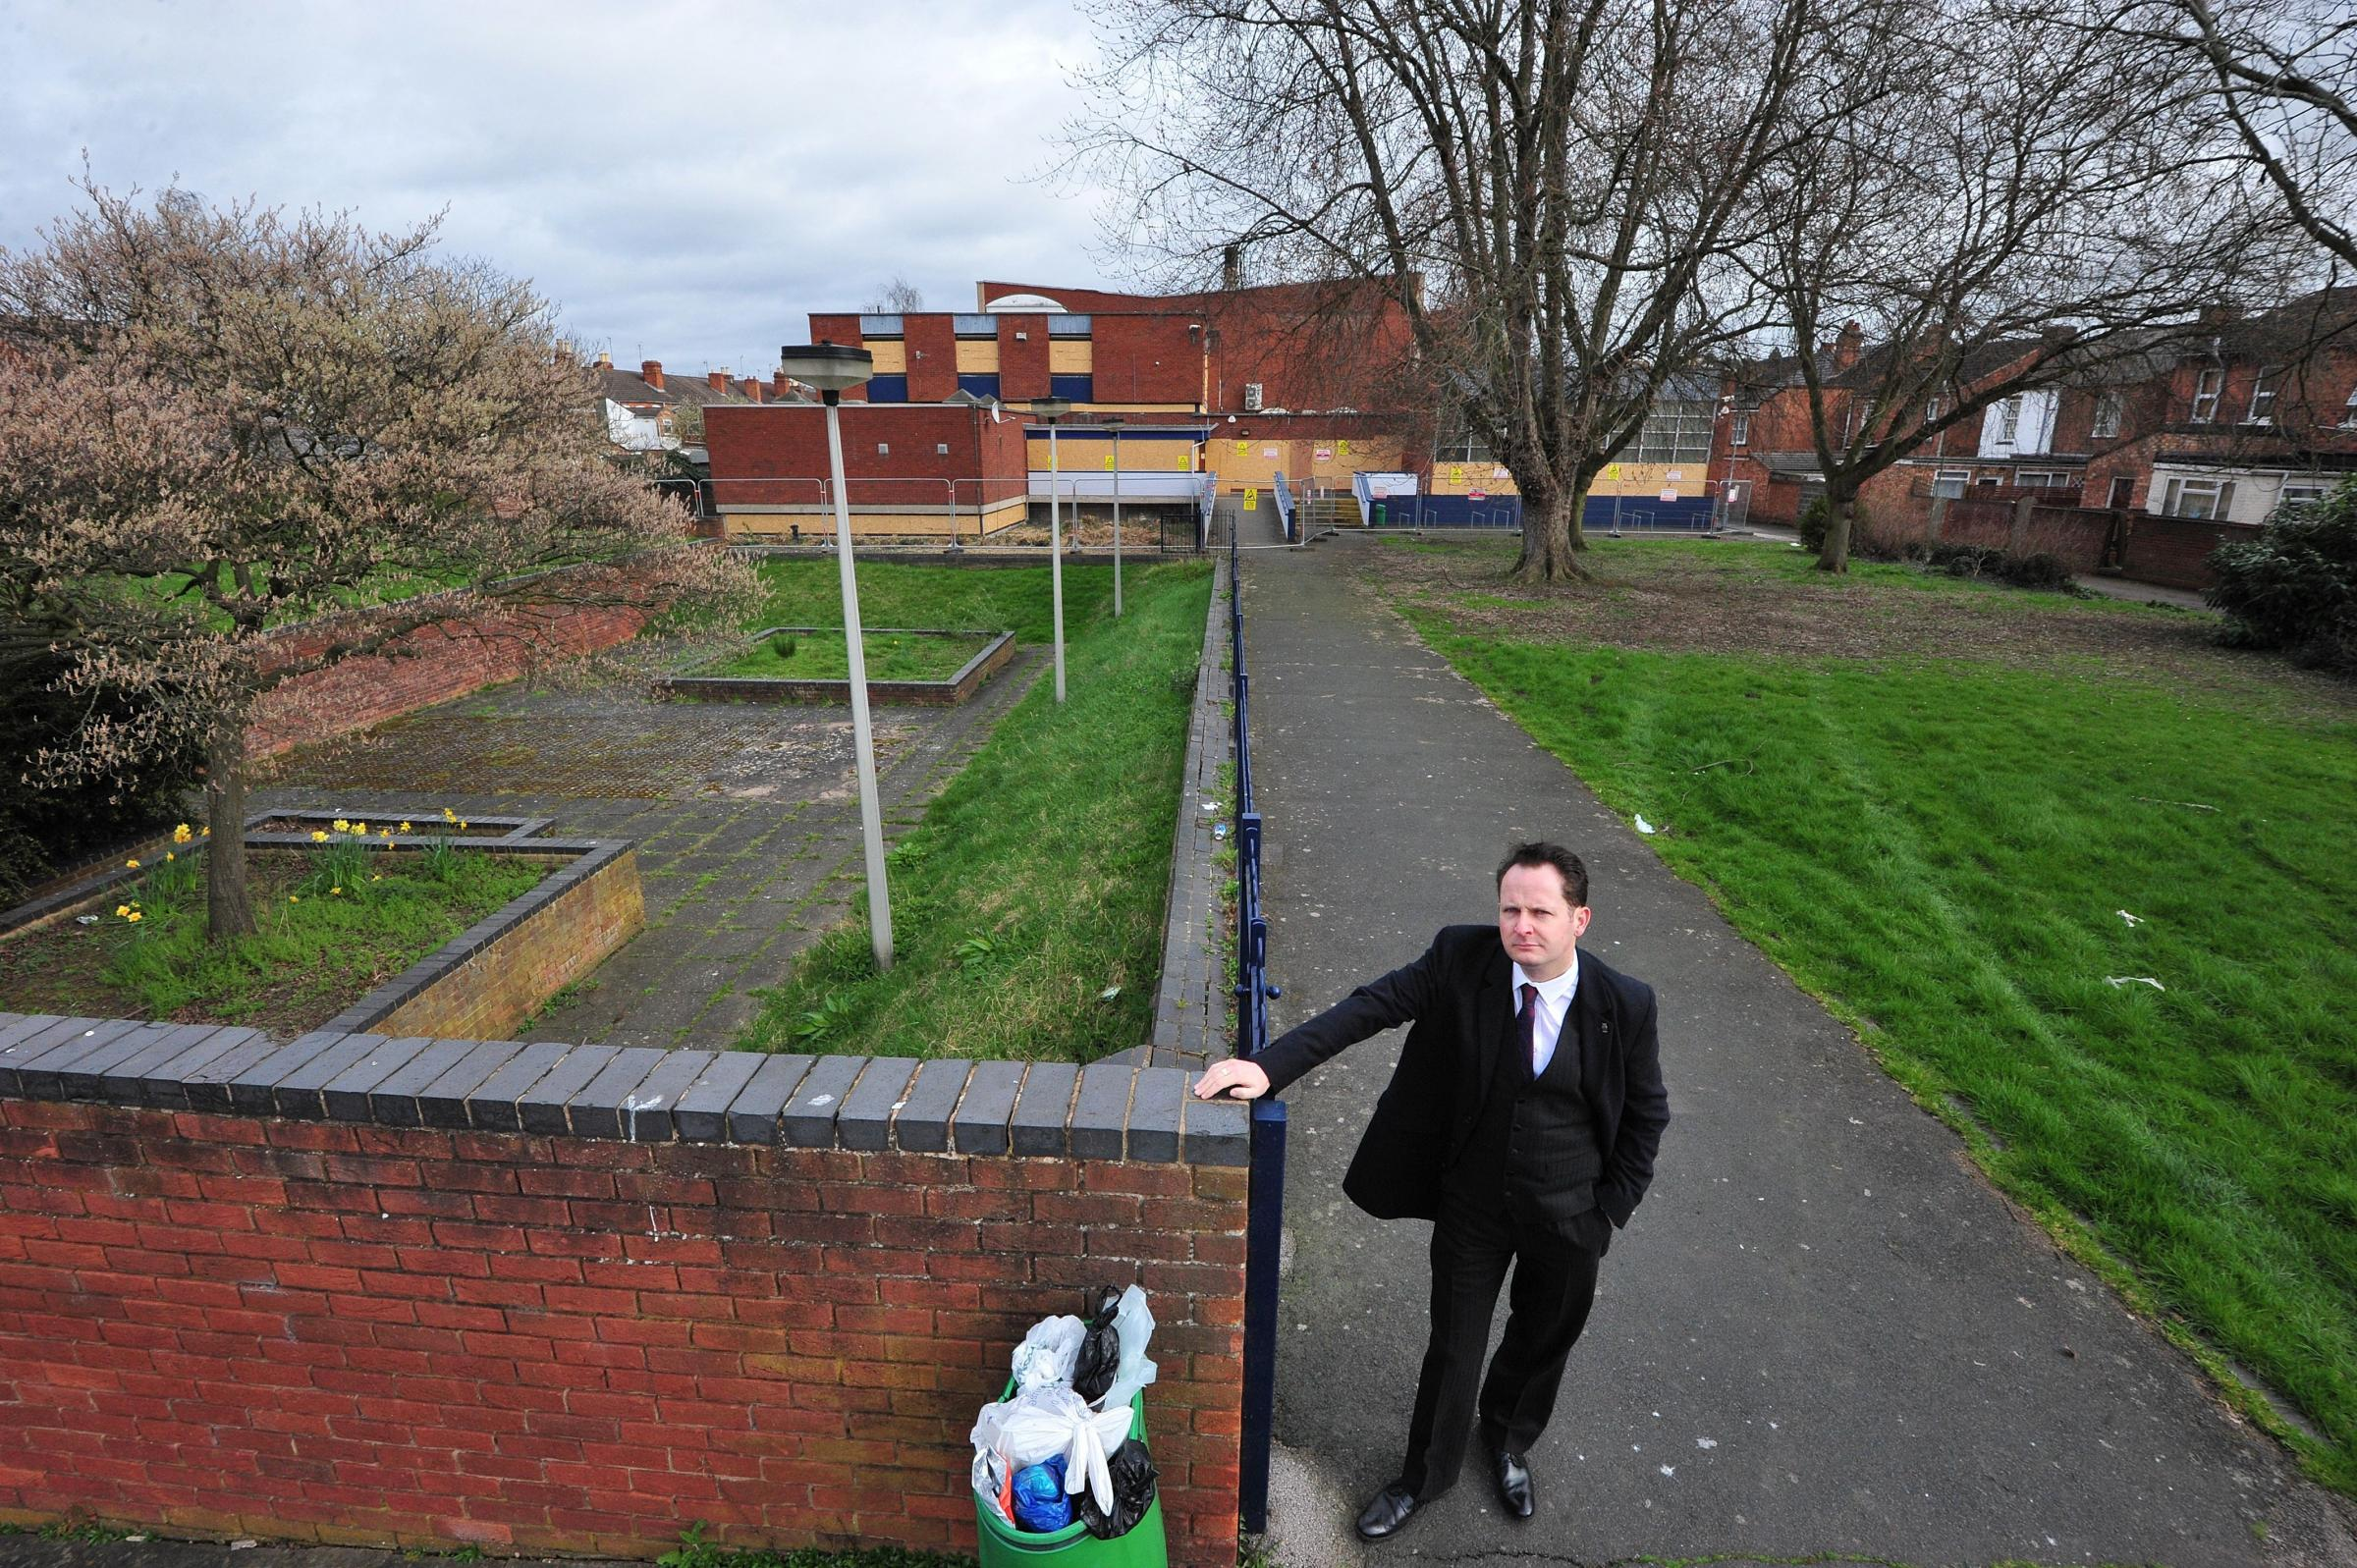 Cllr Alan Feeney at the Sansome Walk swimming pool site. Residents want to talk to him about its future